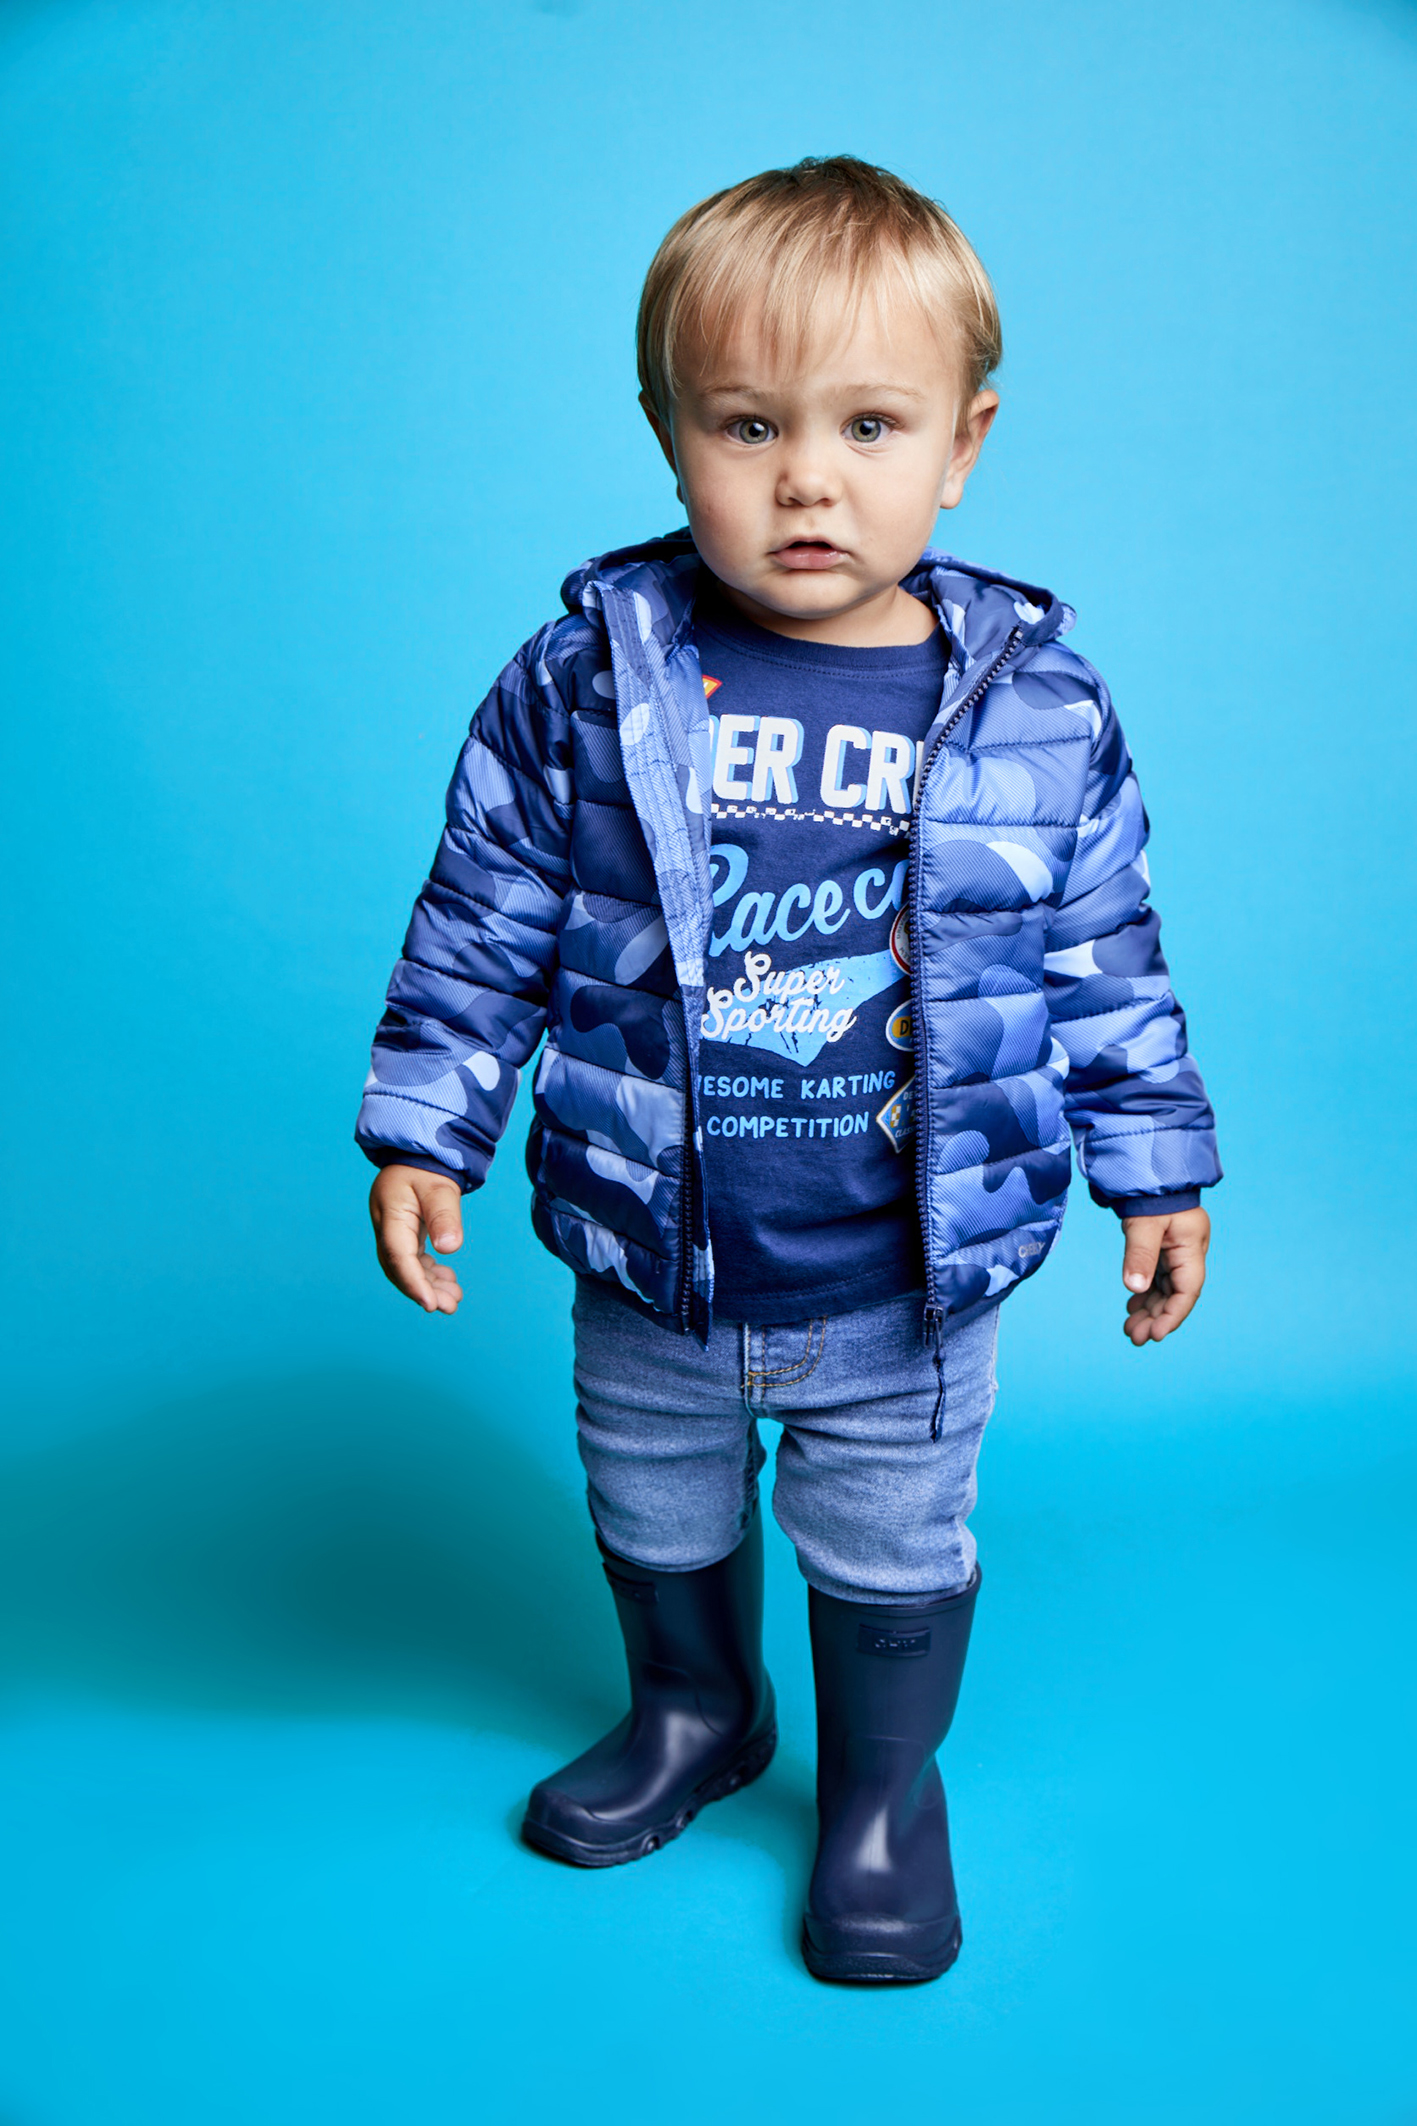 cheeky_campera-sky-soldier--boy-1-3_53-31-2021__picture-82773